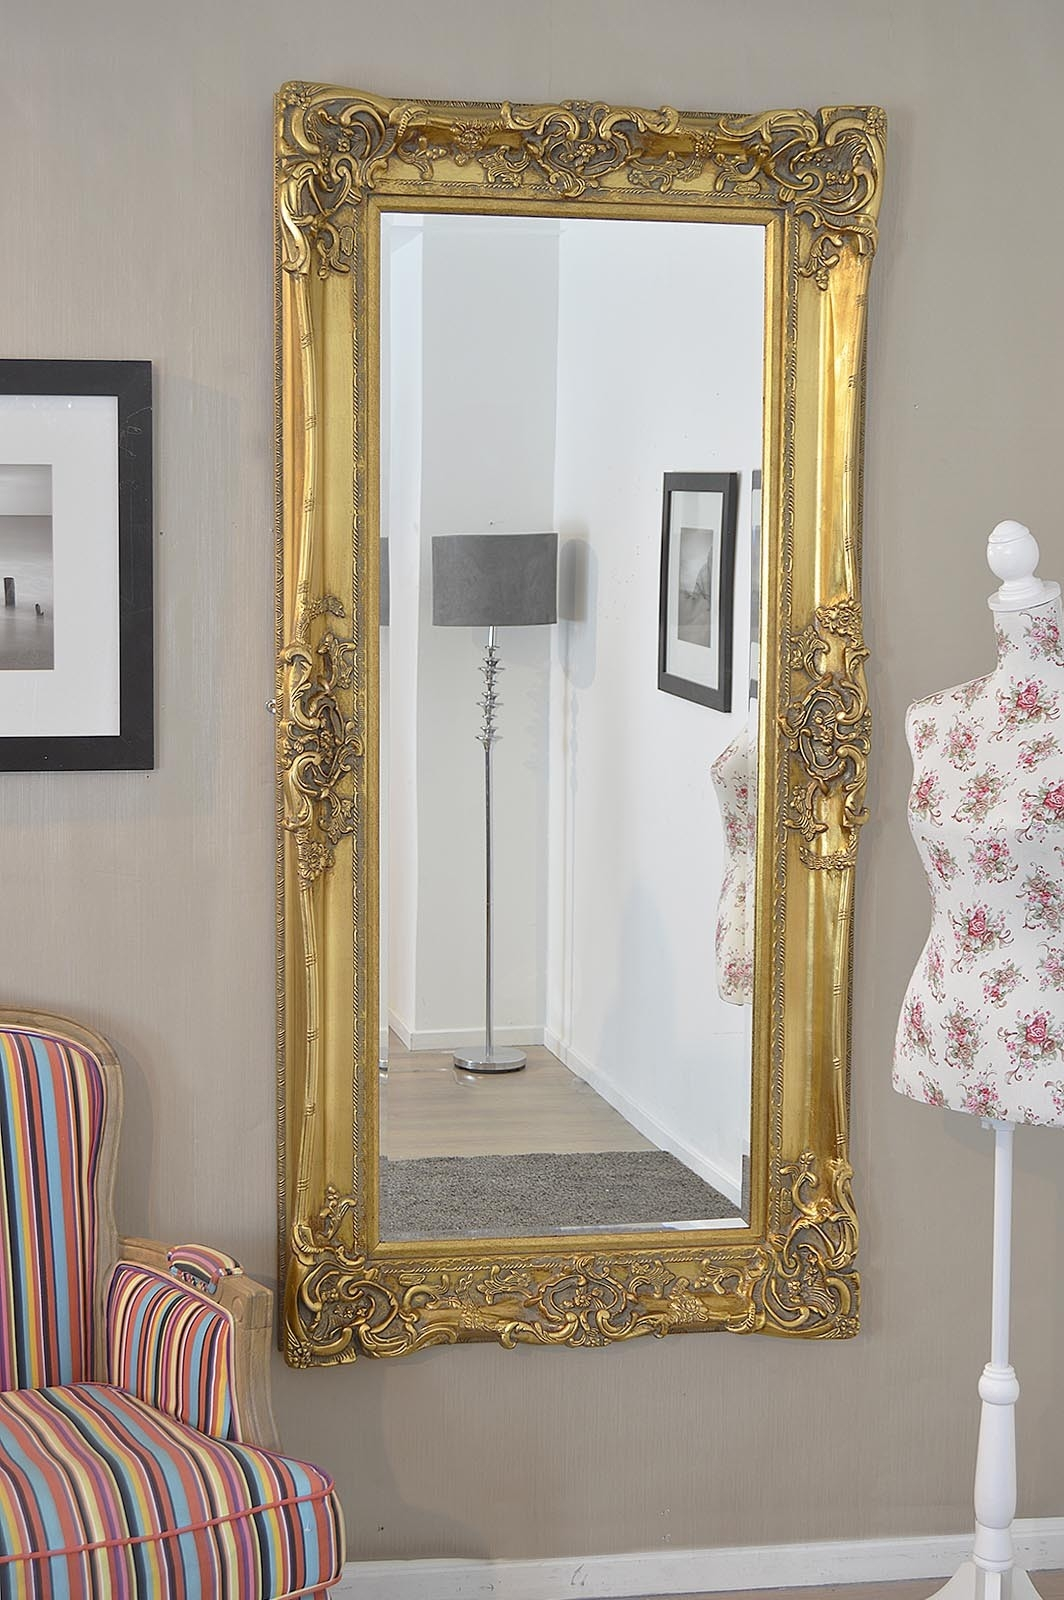 Frame Gold Antique Shab Chic Ornate Wall Mirror 6ft X 3ft 183 X Intended For Shabby Chic Gold Mirror (Photo 2 of 15)